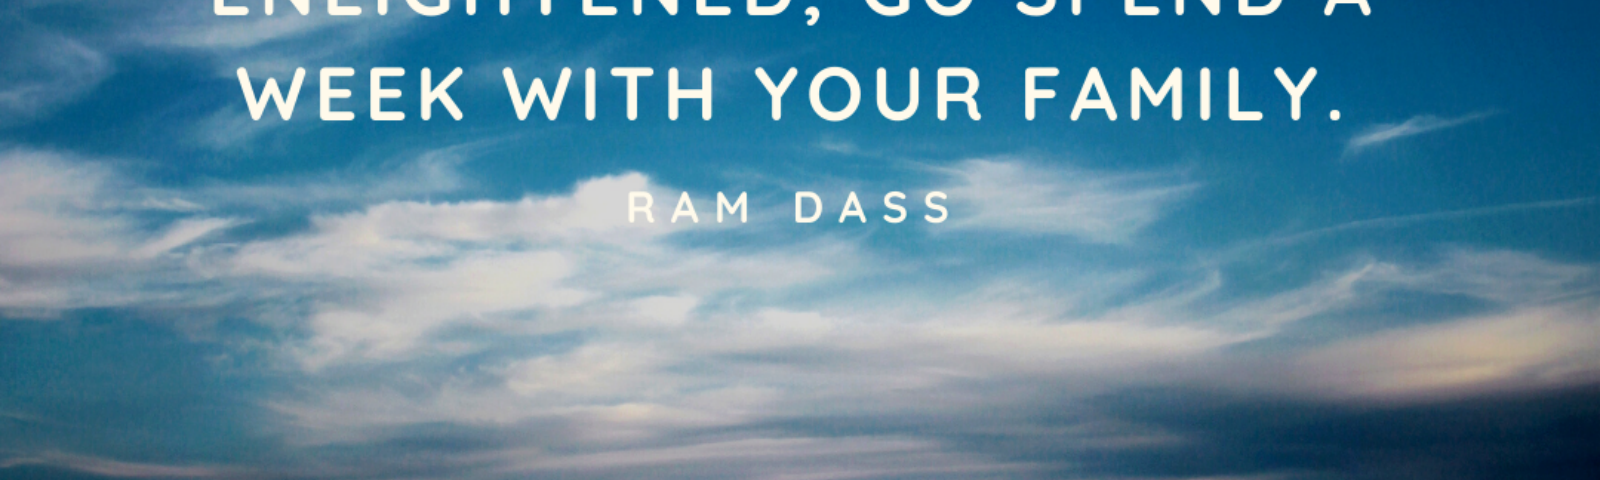 Quote from Ram Dass: If you think you are enlightened, go spend a week with your family.